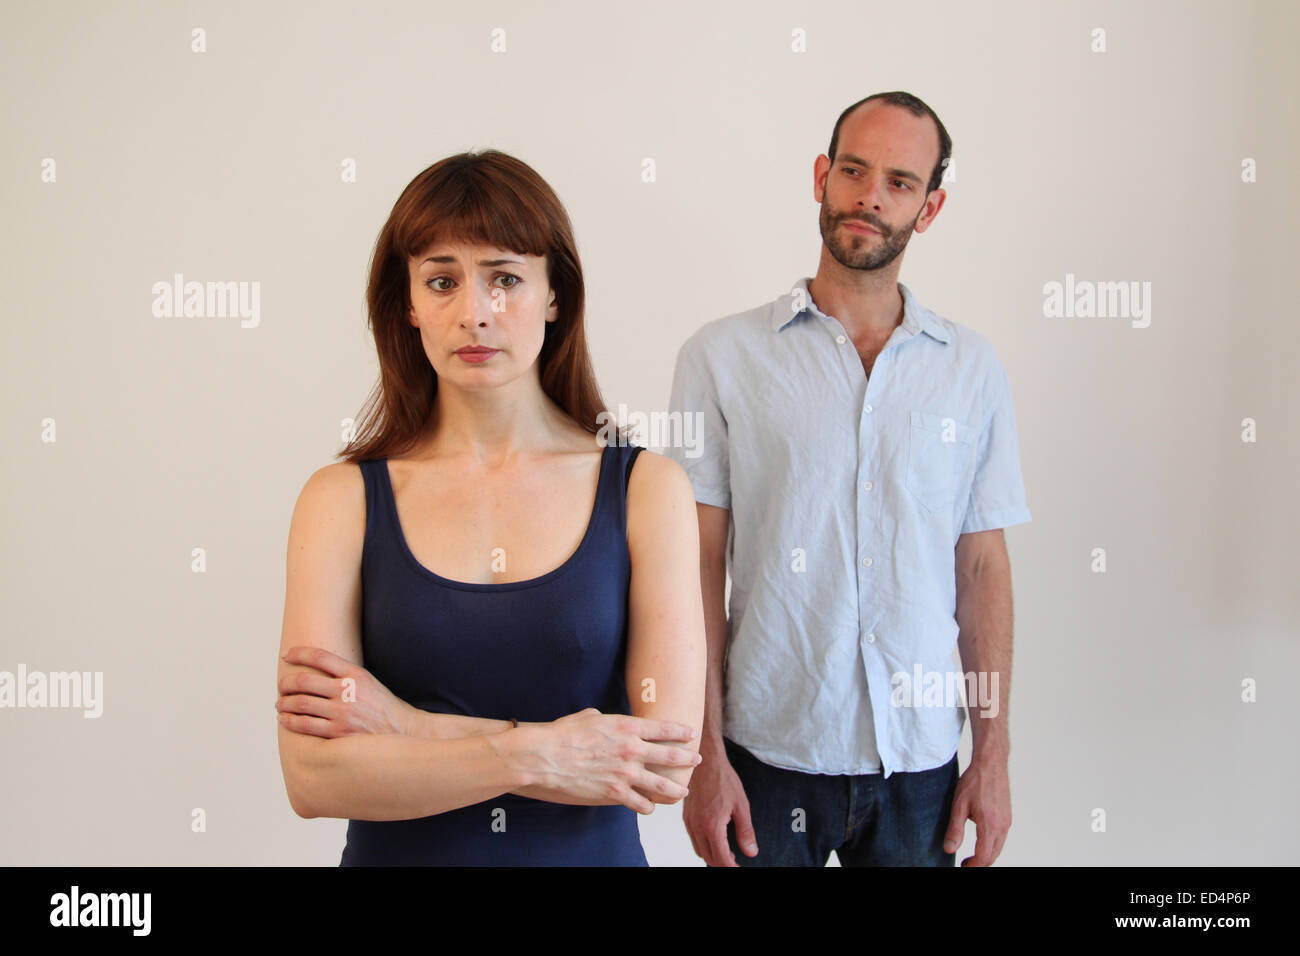 Couple with relationship problems / in domestic abuse situation - Stock Image